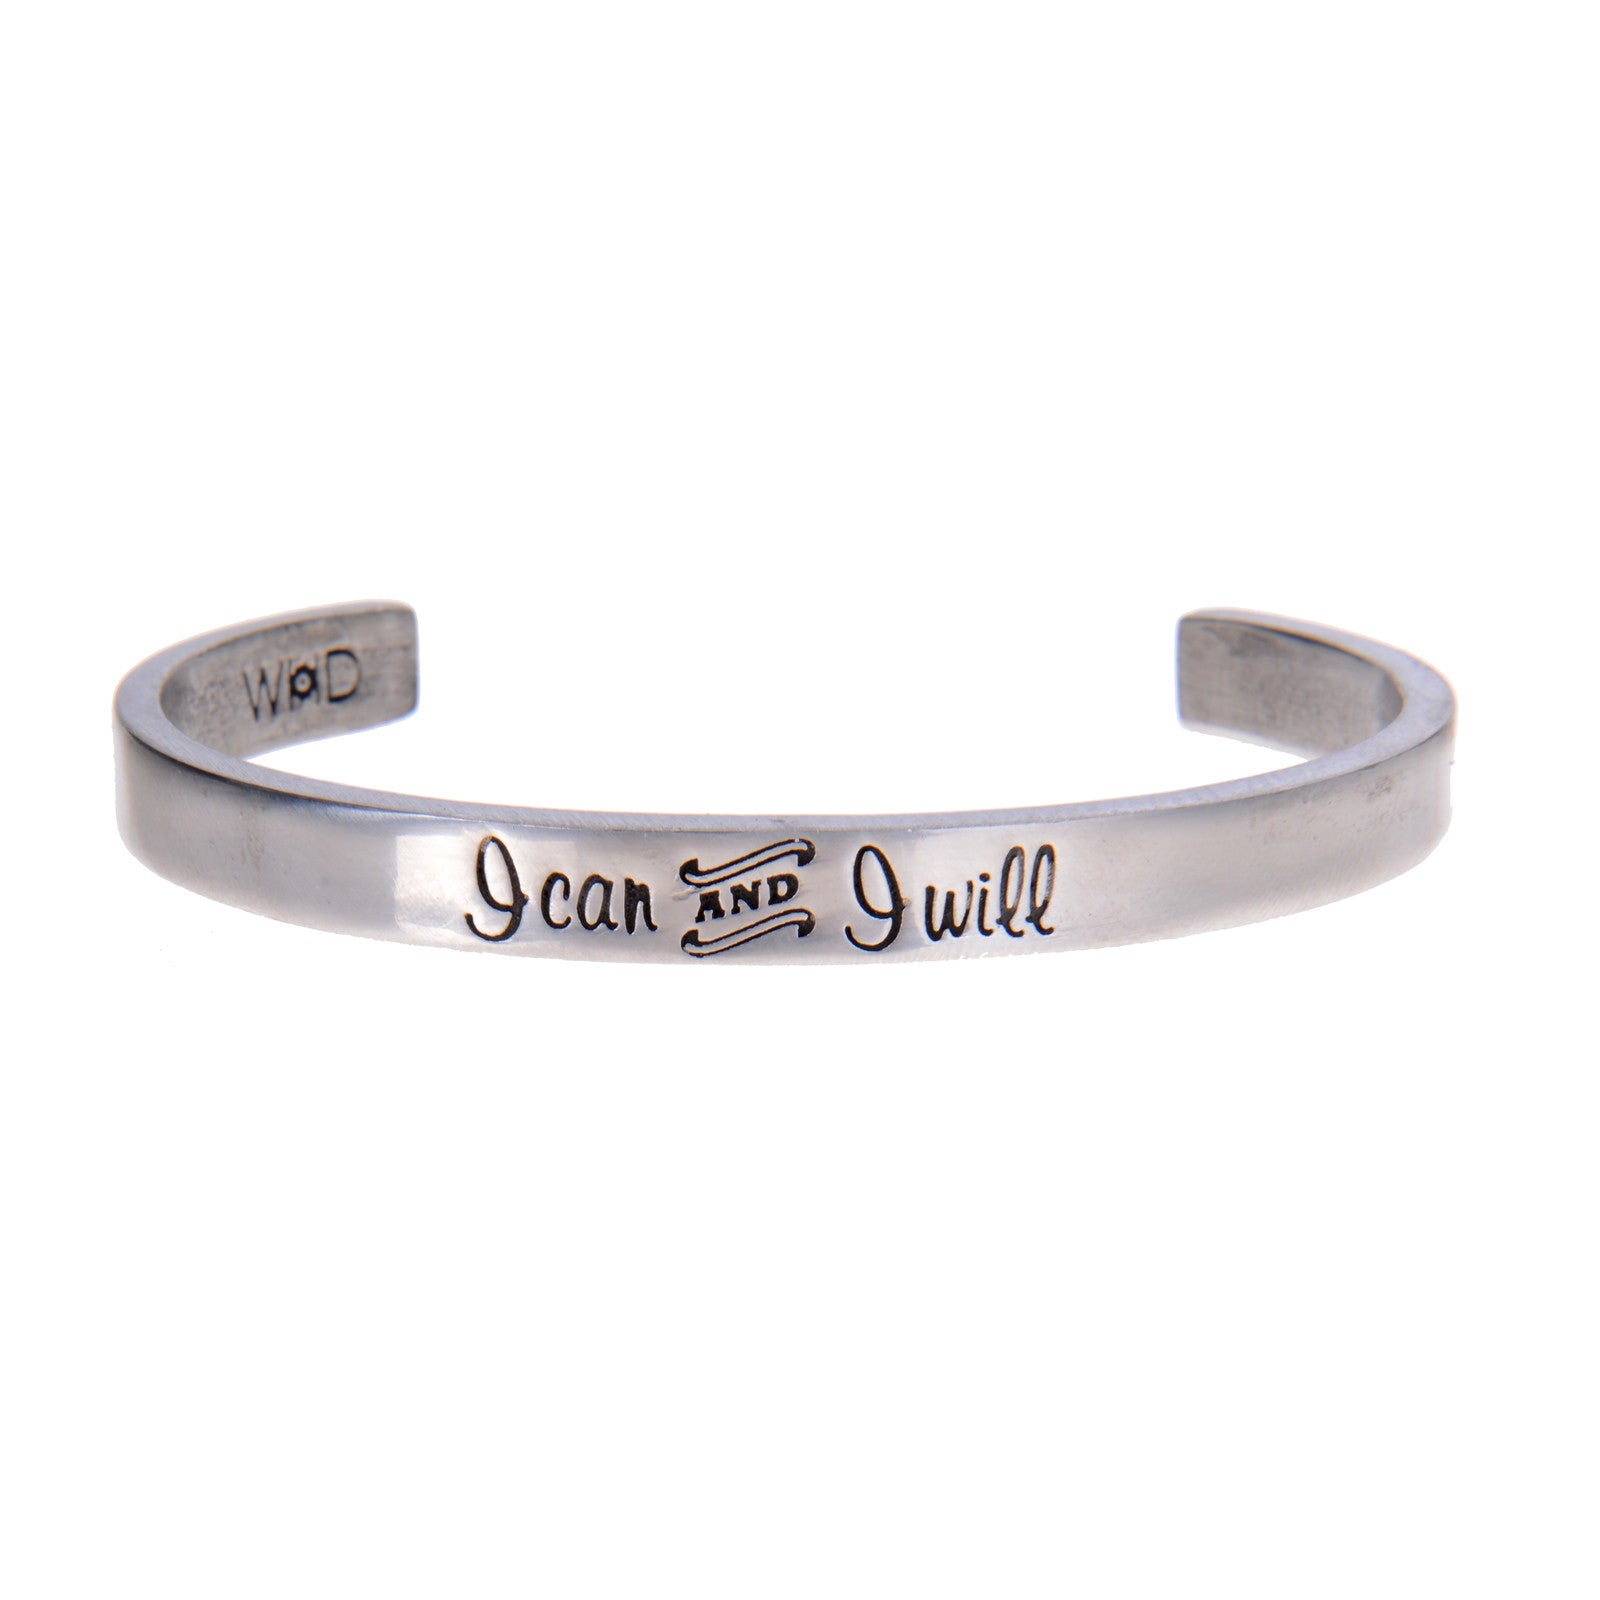 I Can and I Will Quotable Cuff Bracelet - Whitney Howard Designs